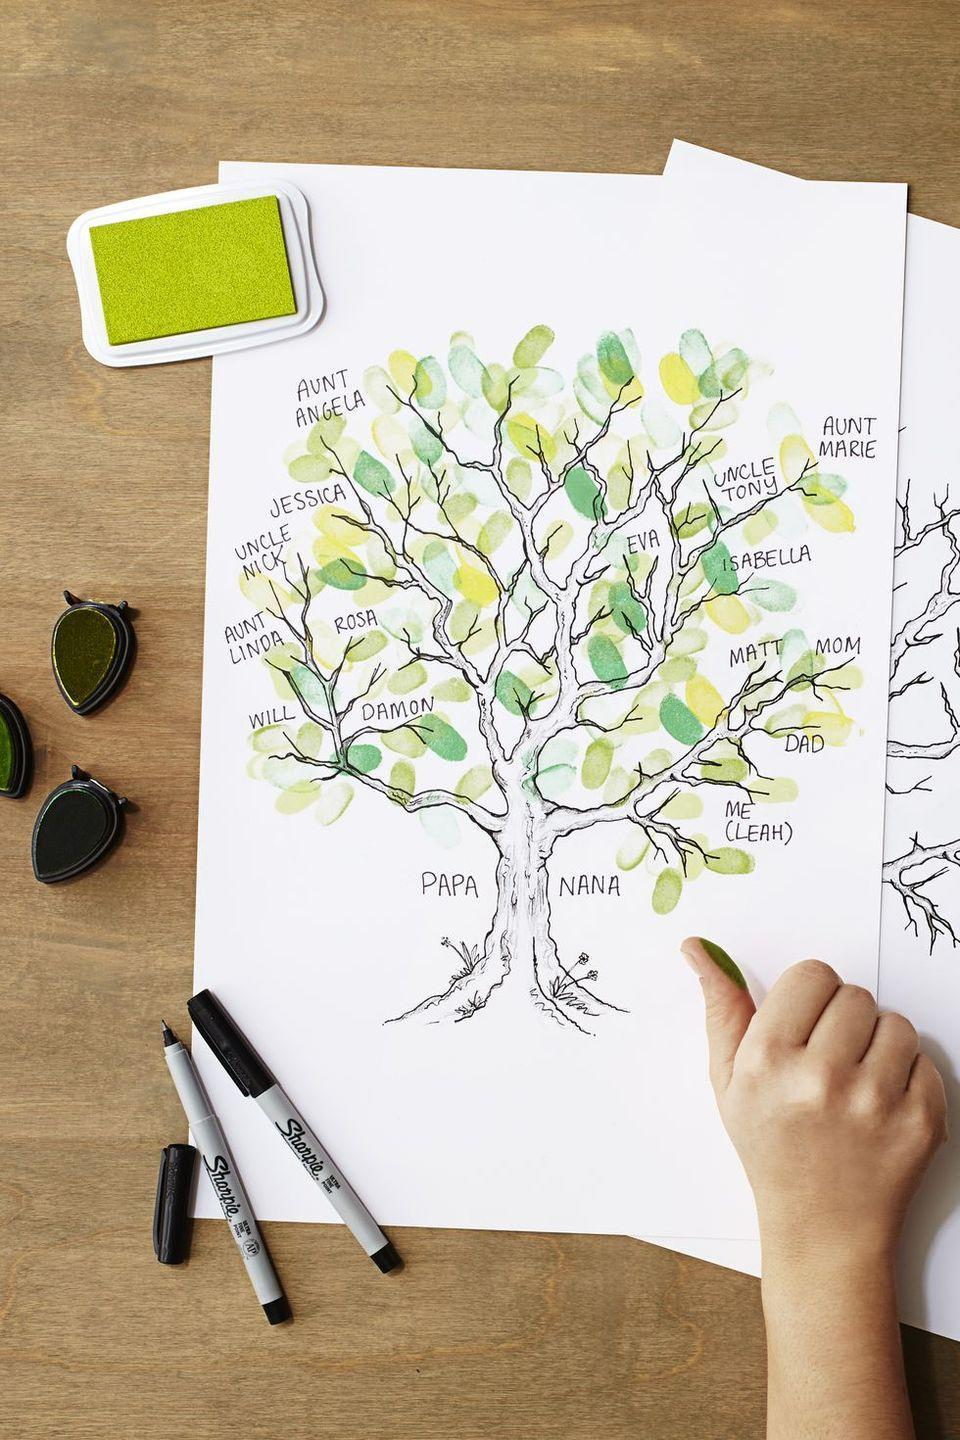 "<p>What better time to put together a comprehensive family tree than when the whole family is together? Using everyone's fingerprints will make it even more meaningful. Use red and orange ink to give this craft a seasonal spin.</p><p><em><a href=""https://www.goodhousekeeping.com/home/craft-ideas/a37873/family-tree-craft-for-kids/"" rel=""nofollow noopener"" target=""_blank"" data-ylk=""slk:Get the tutorial »"" class=""link rapid-noclick-resp"">Get the tutorial »</a></em></p><p><strong>RELATED: </strong><a href=""https://www.goodhousekeeping.com/holidays/thanksgiving-ideas/g2907/thanksgiving-kids-crafts/"" rel=""nofollow noopener"" target=""_blank"" data-ylk=""slk:36 Easy Thanksgiving Crafts for Kids for a Fun Holiday"" class=""link rapid-noclick-resp"">36 Easy Thanksgiving Crafts for Kids for a Fun Holiday</a></p>"